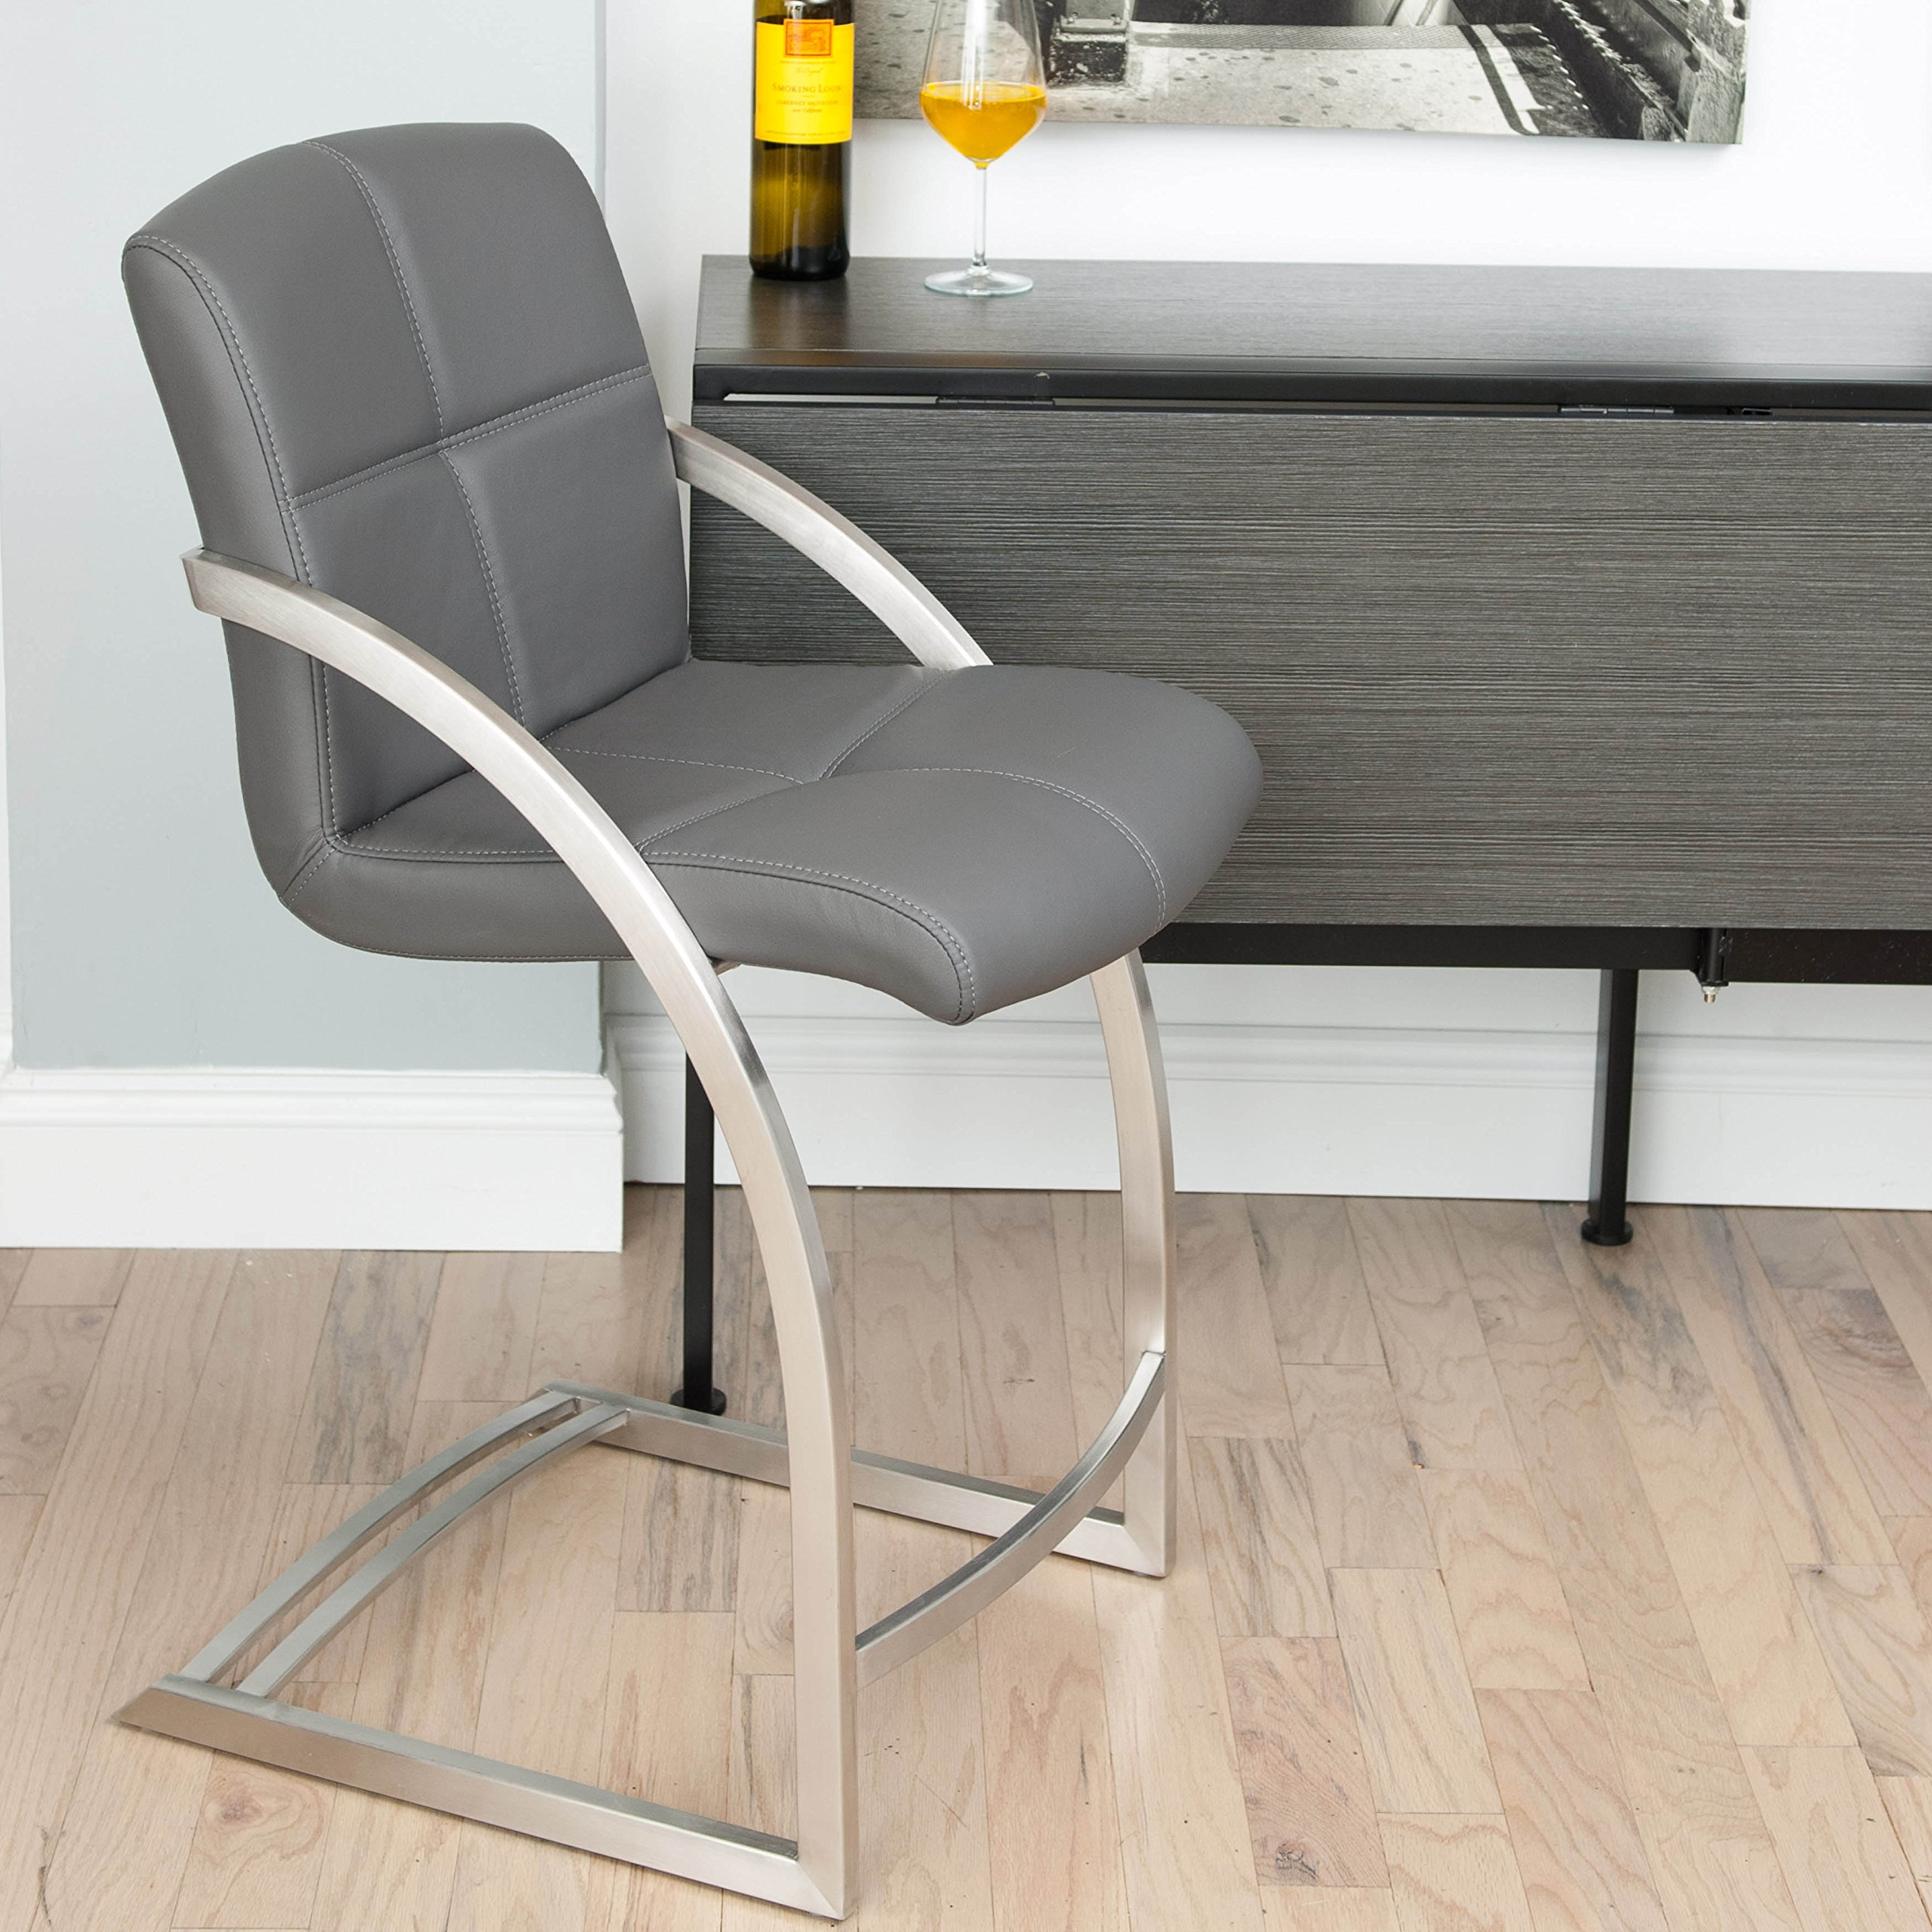 MIX Brushed Stainless Steel Faux Leather Grey 26-inch Seat Height Stationary Bar Stool